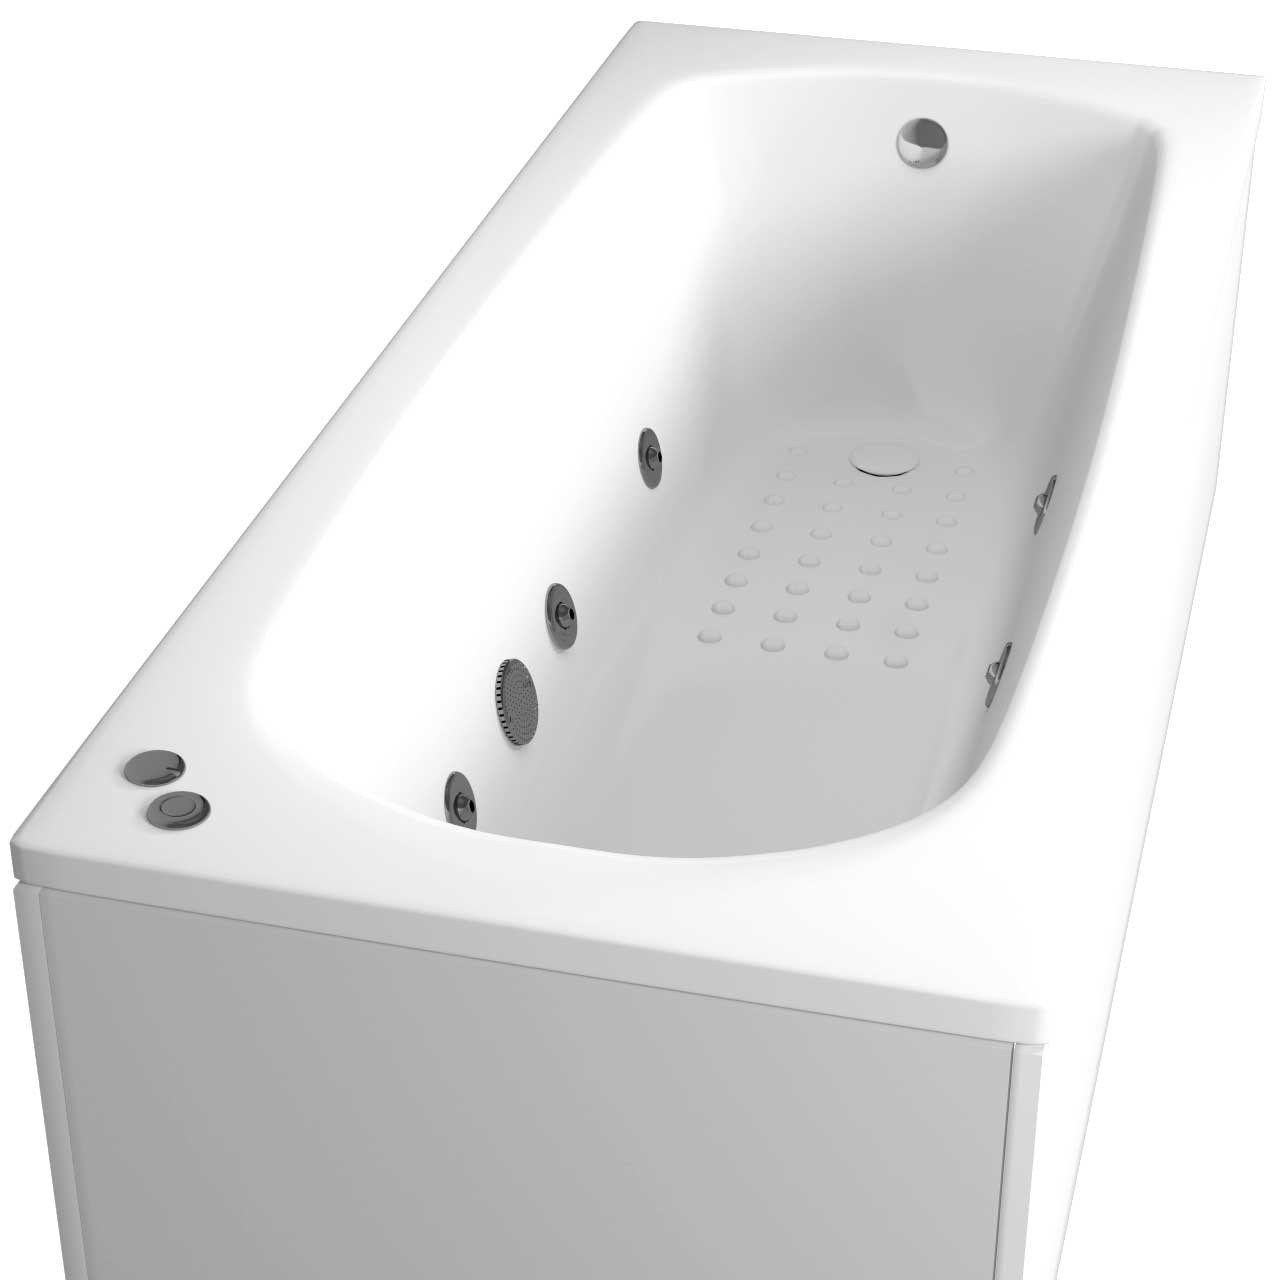 Monte Carlo Anti Slip Textured Base End Tap 6 Jet Chrome V-Tec Whirlpool Bath 1700x700mm